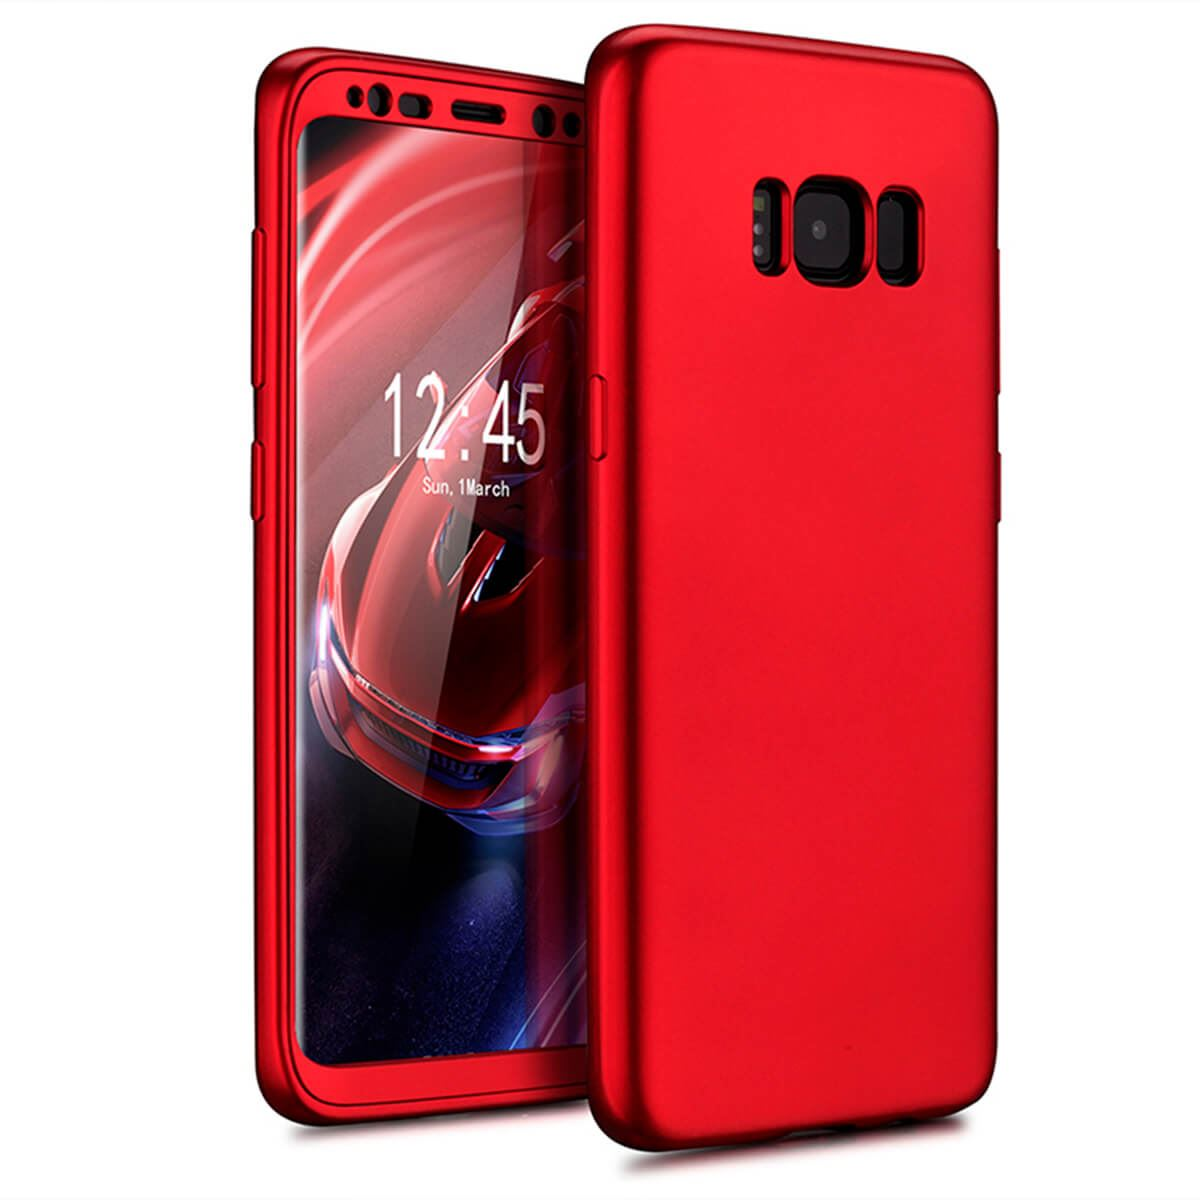 New-ShockProof-Hybrid-360-TPU-Thin-Case-Cover-For-Samsung-Galaxy-S7-edge-S8-S9 miniature 39